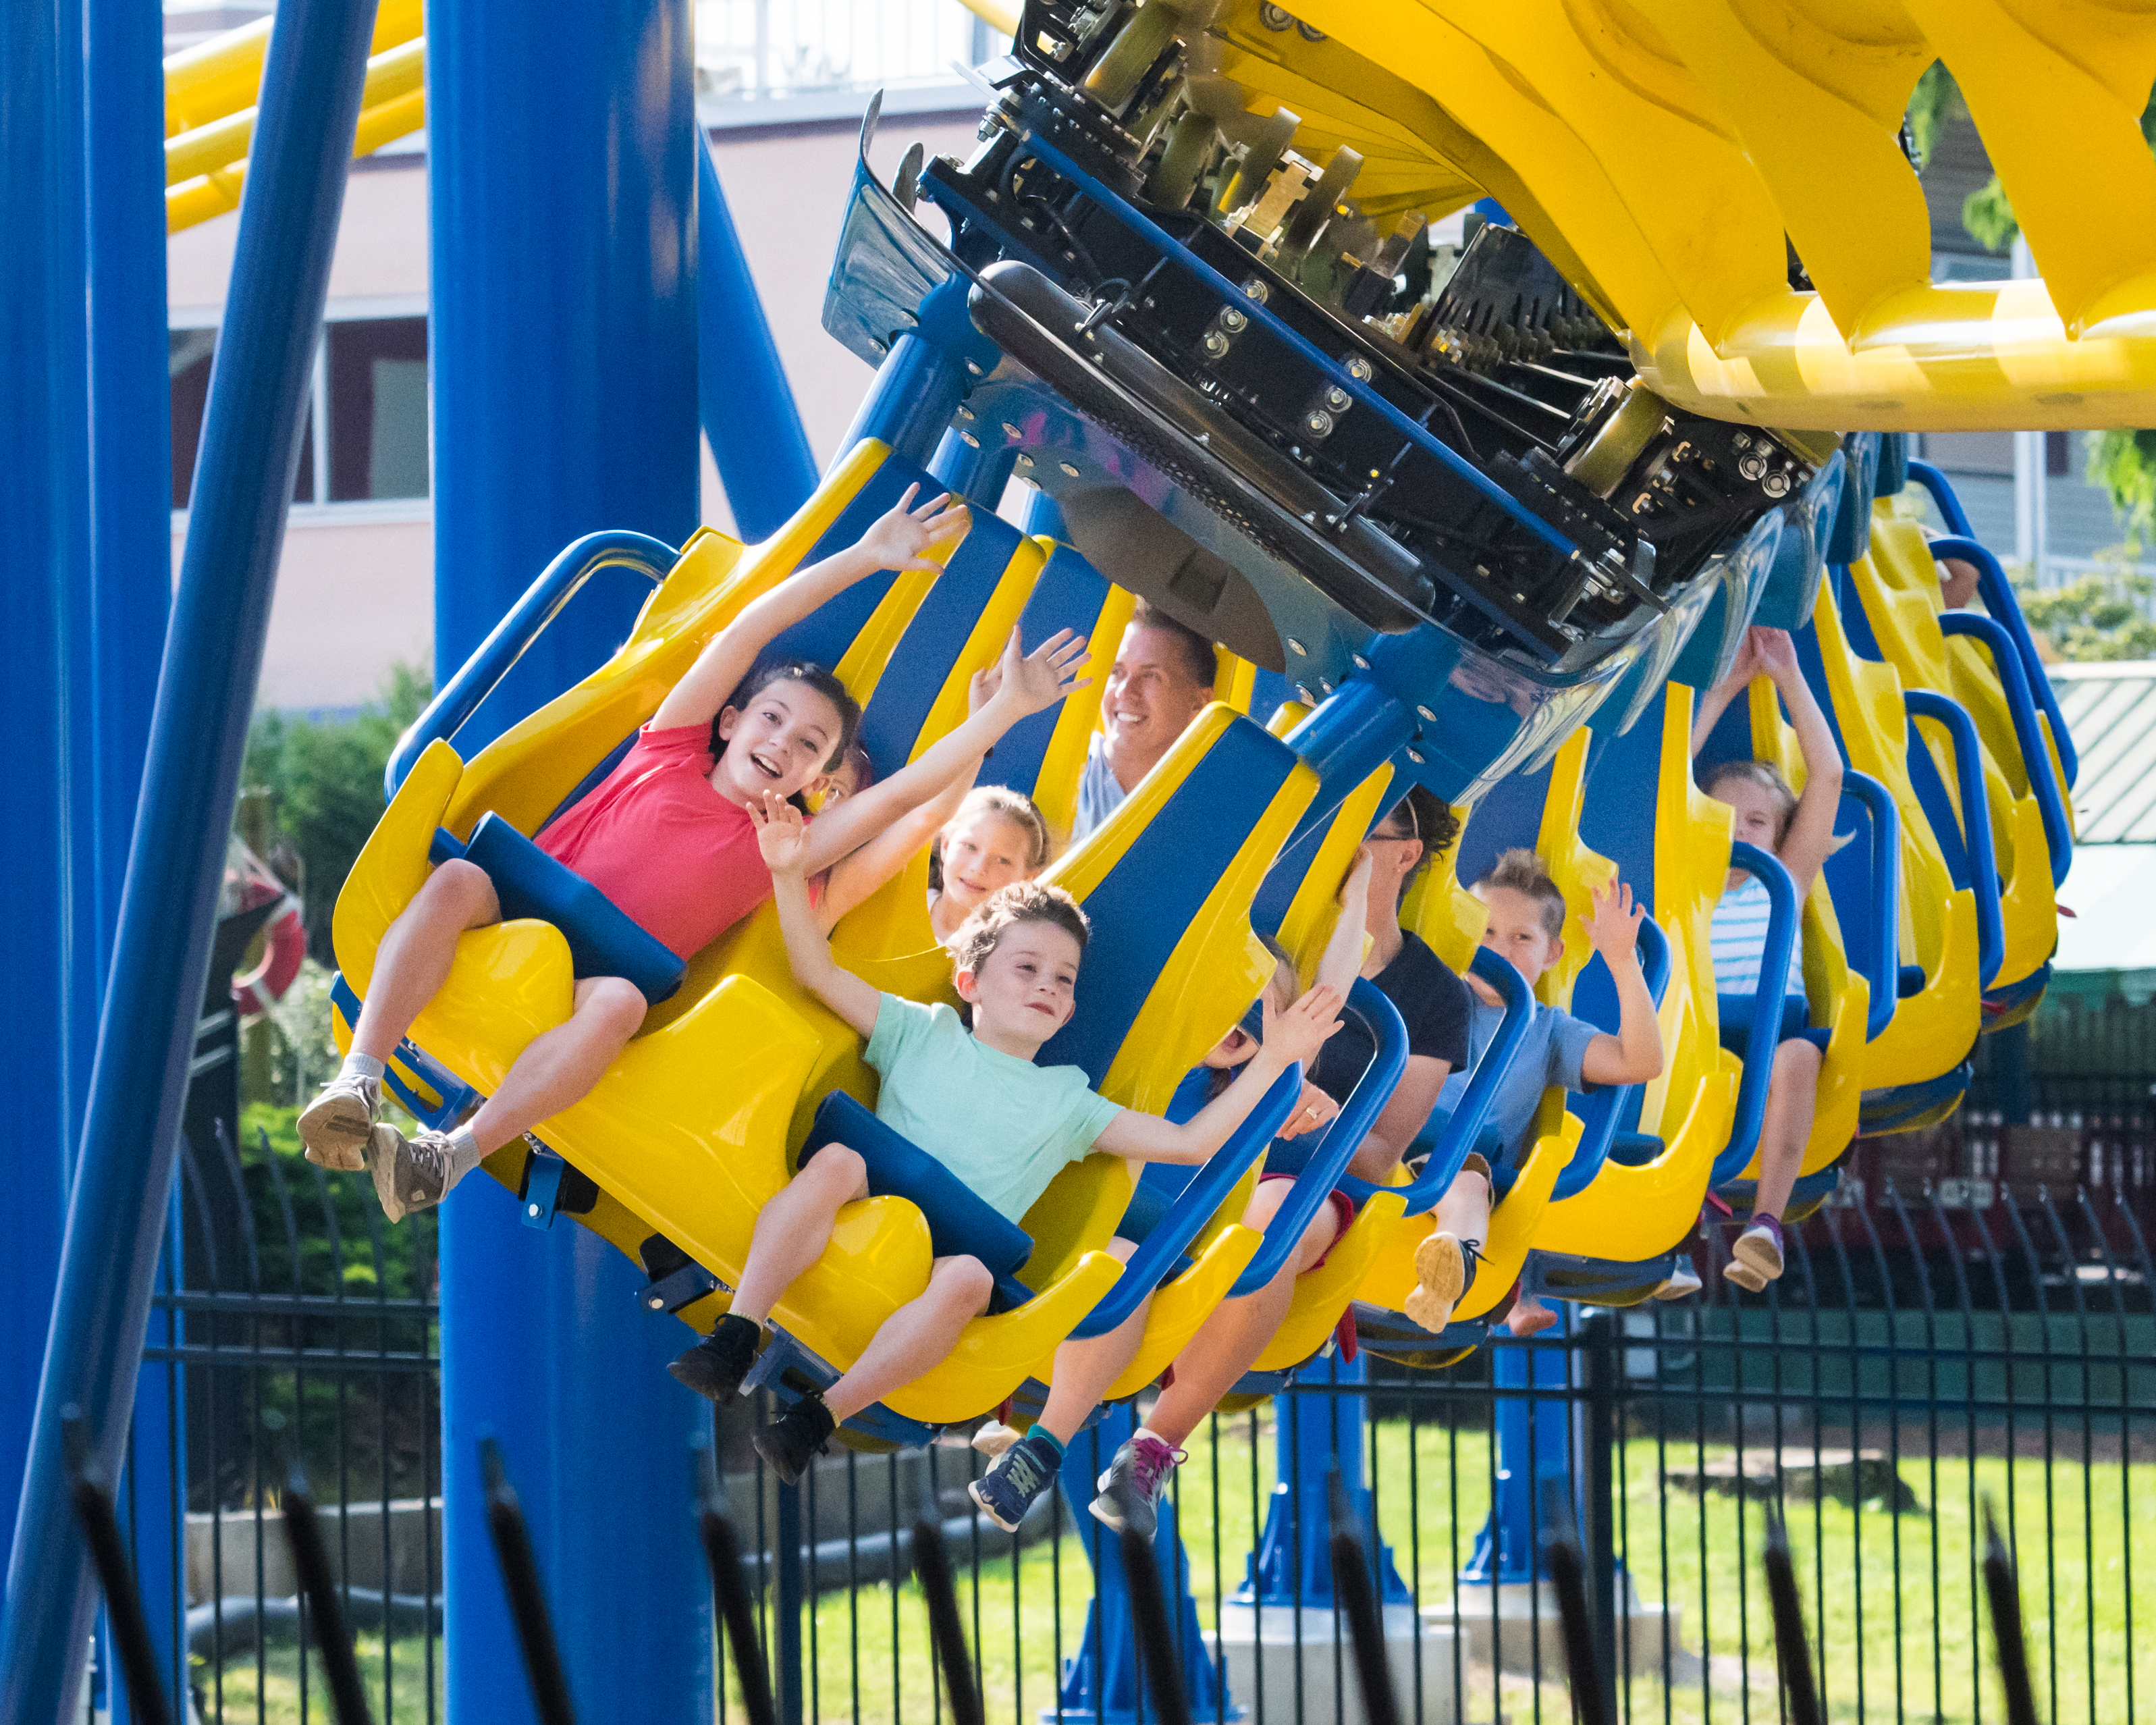 Two children riding in front row of yellow and blue suspended steel roller coaster.